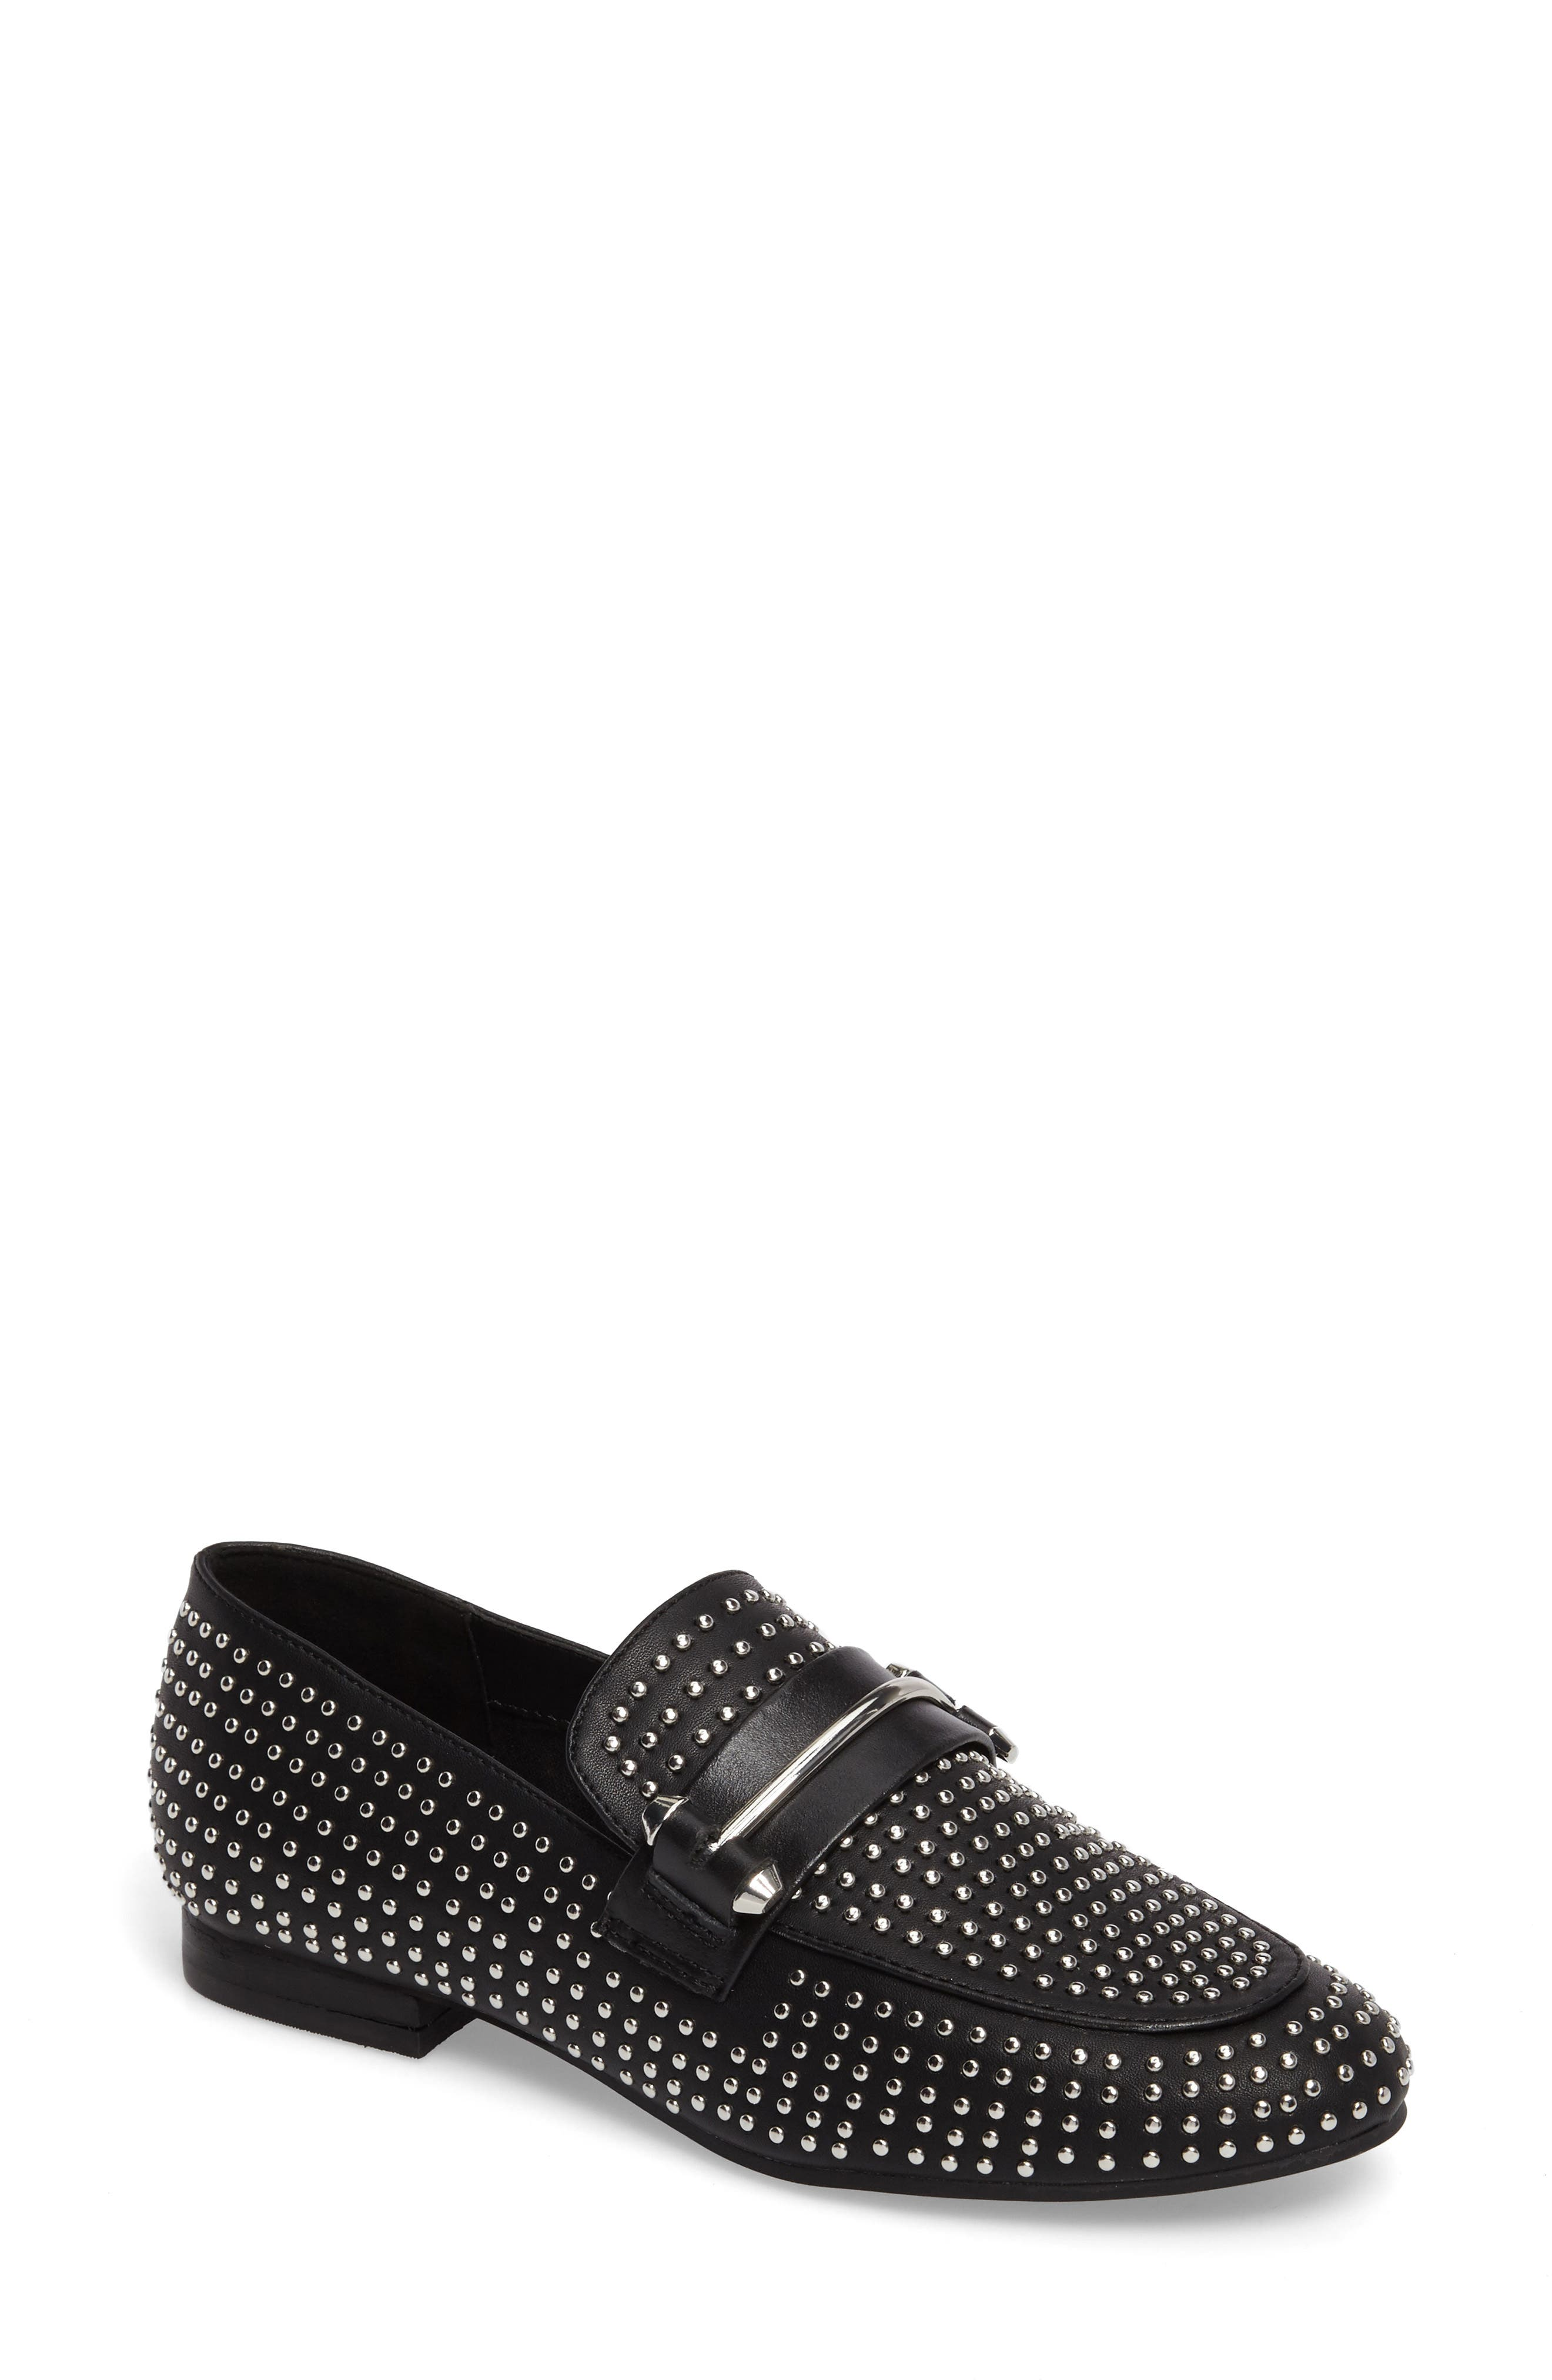 Kast Studded Loafer,                             Main thumbnail 1, color,                             Black Faux Leather